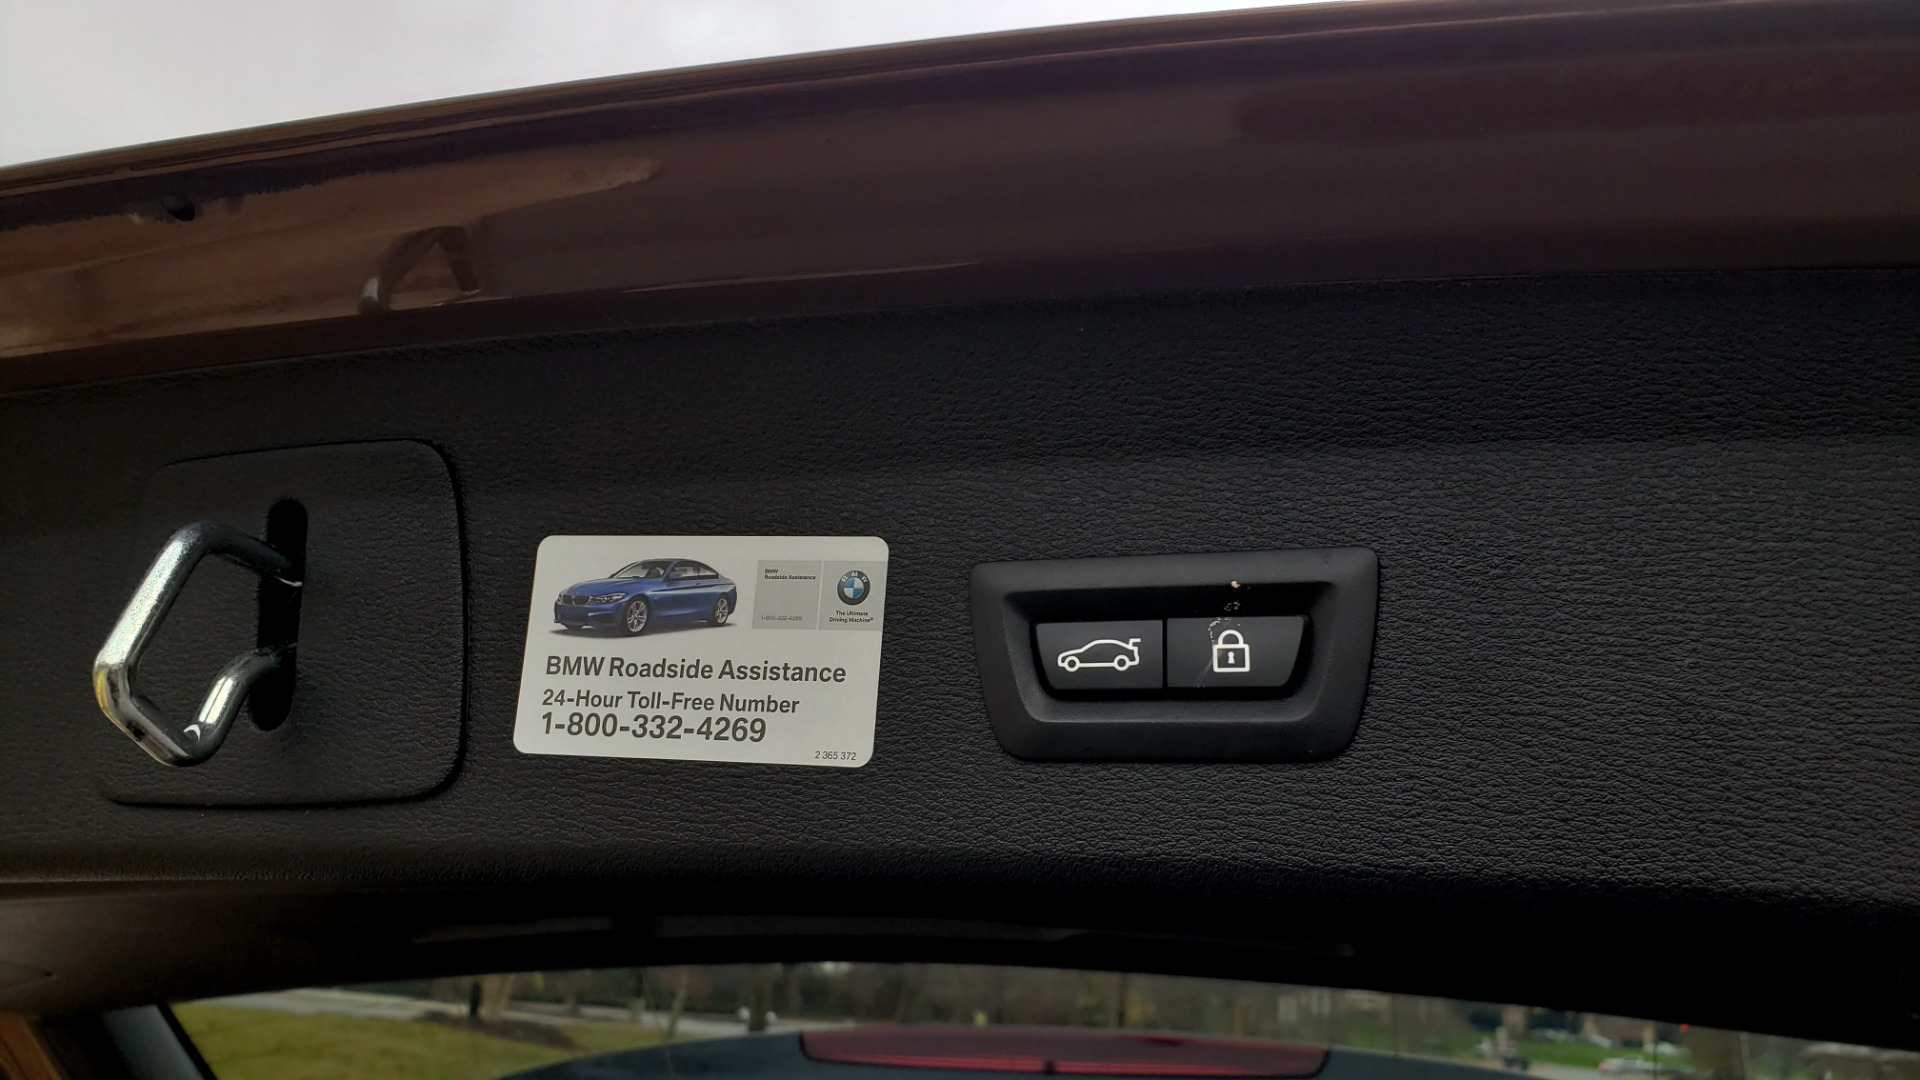 Used 2017 BMW X1 XDRIVE28I / PREM / TECH / DRVR ASST / COLD WTHR / REARVIEW for sale Sold at Formula Imports in Charlotte NC 28227 18